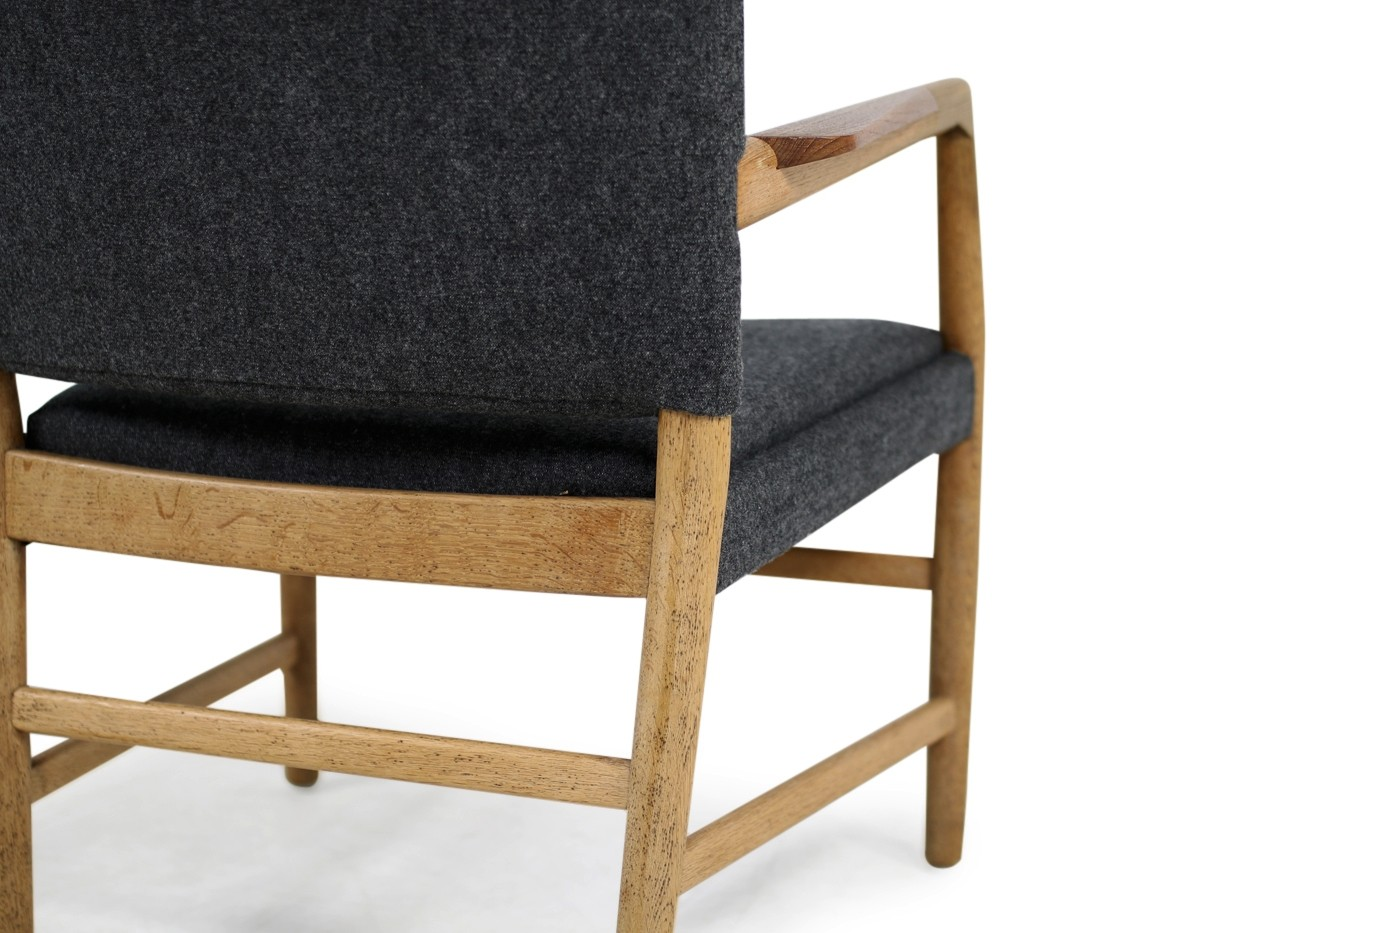 Aarhus Sessel 1950s Hans J Wegner Town Hall Chair Oak Teak Danish Modern